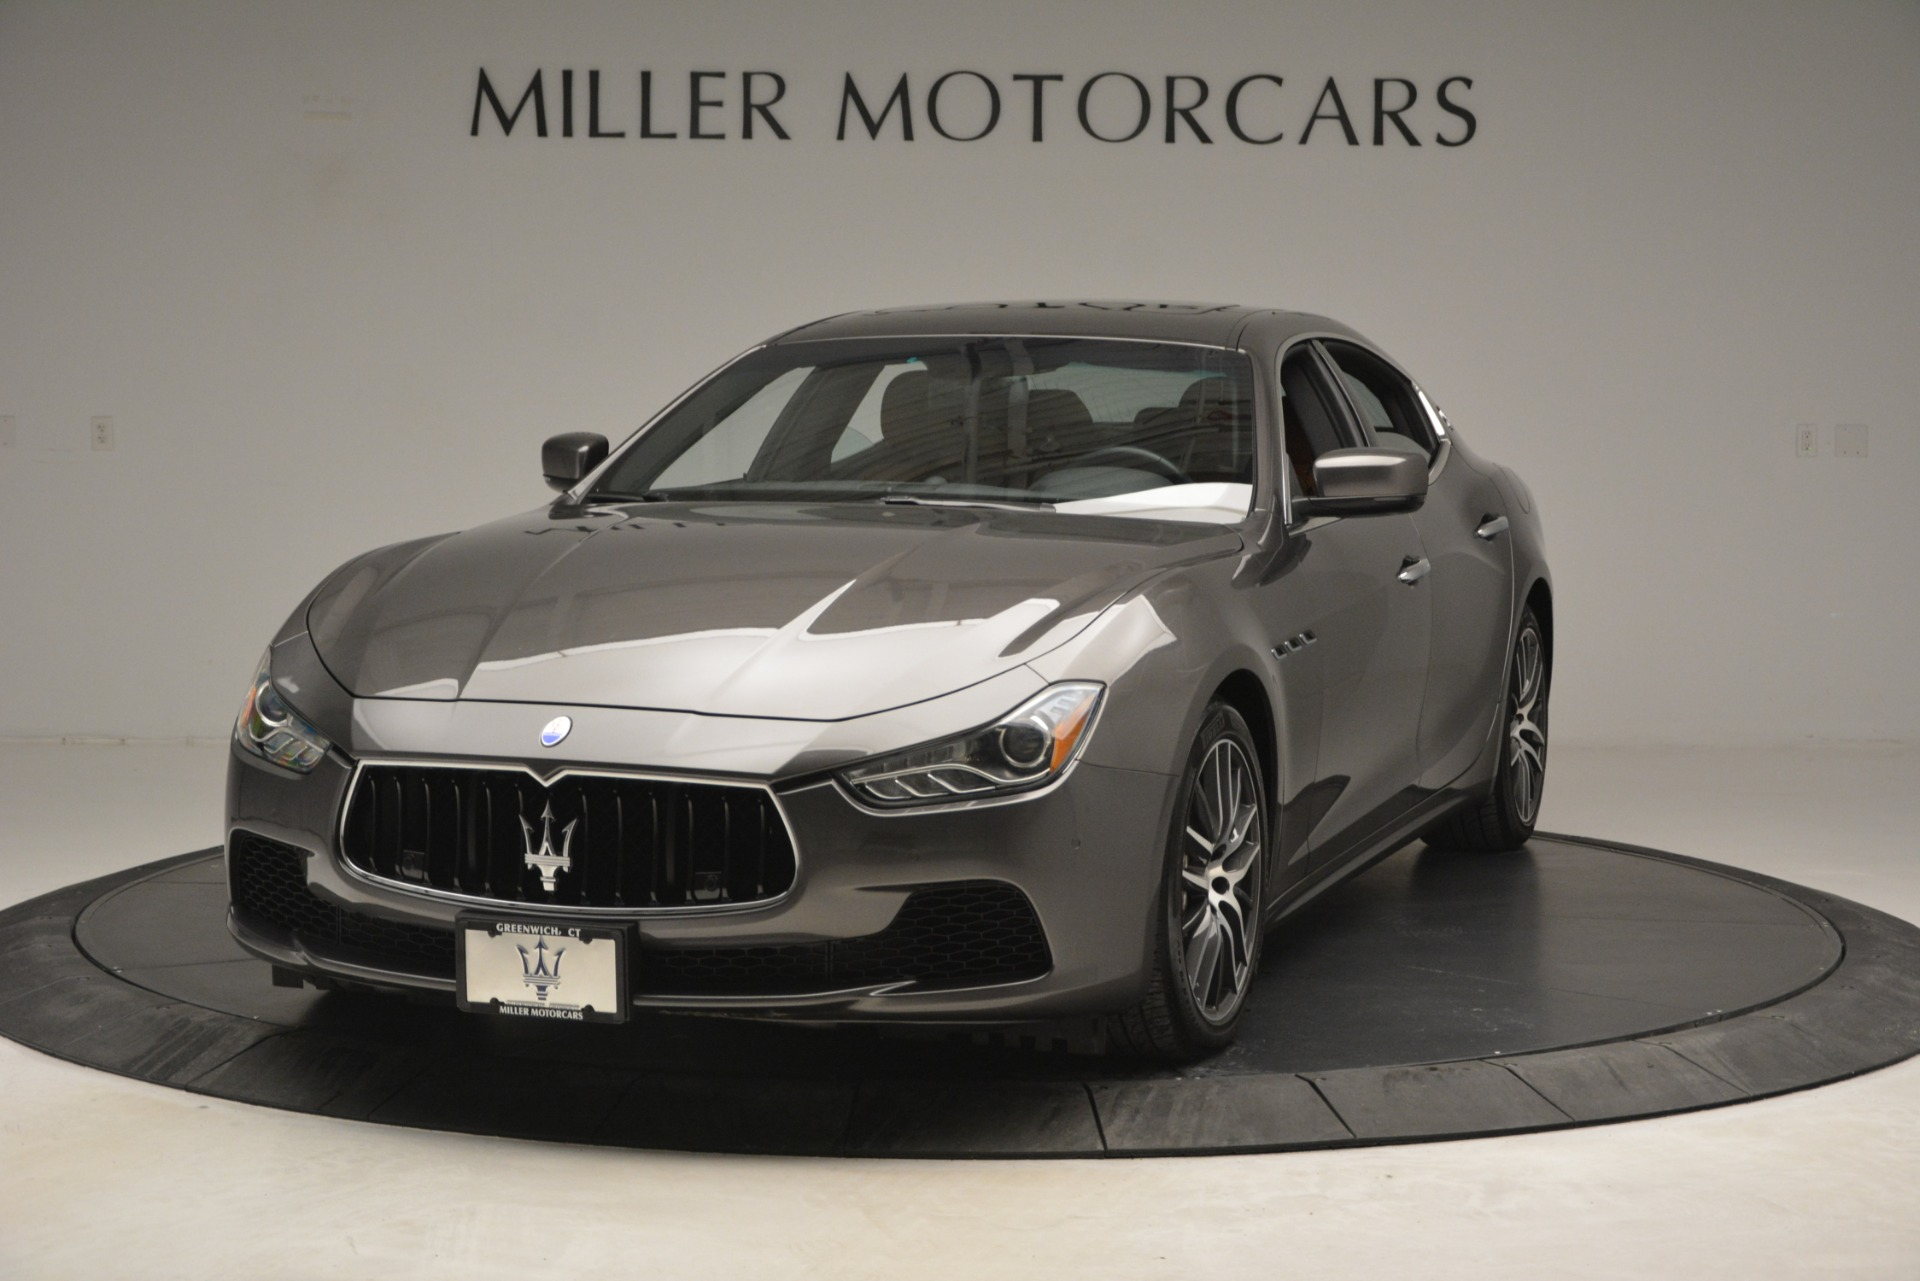 Used 2015 Maserati Ghibli S Q4 For Sale In Greenwich, CT. Alfa Romeo of Greenwich, 7483 2941_main